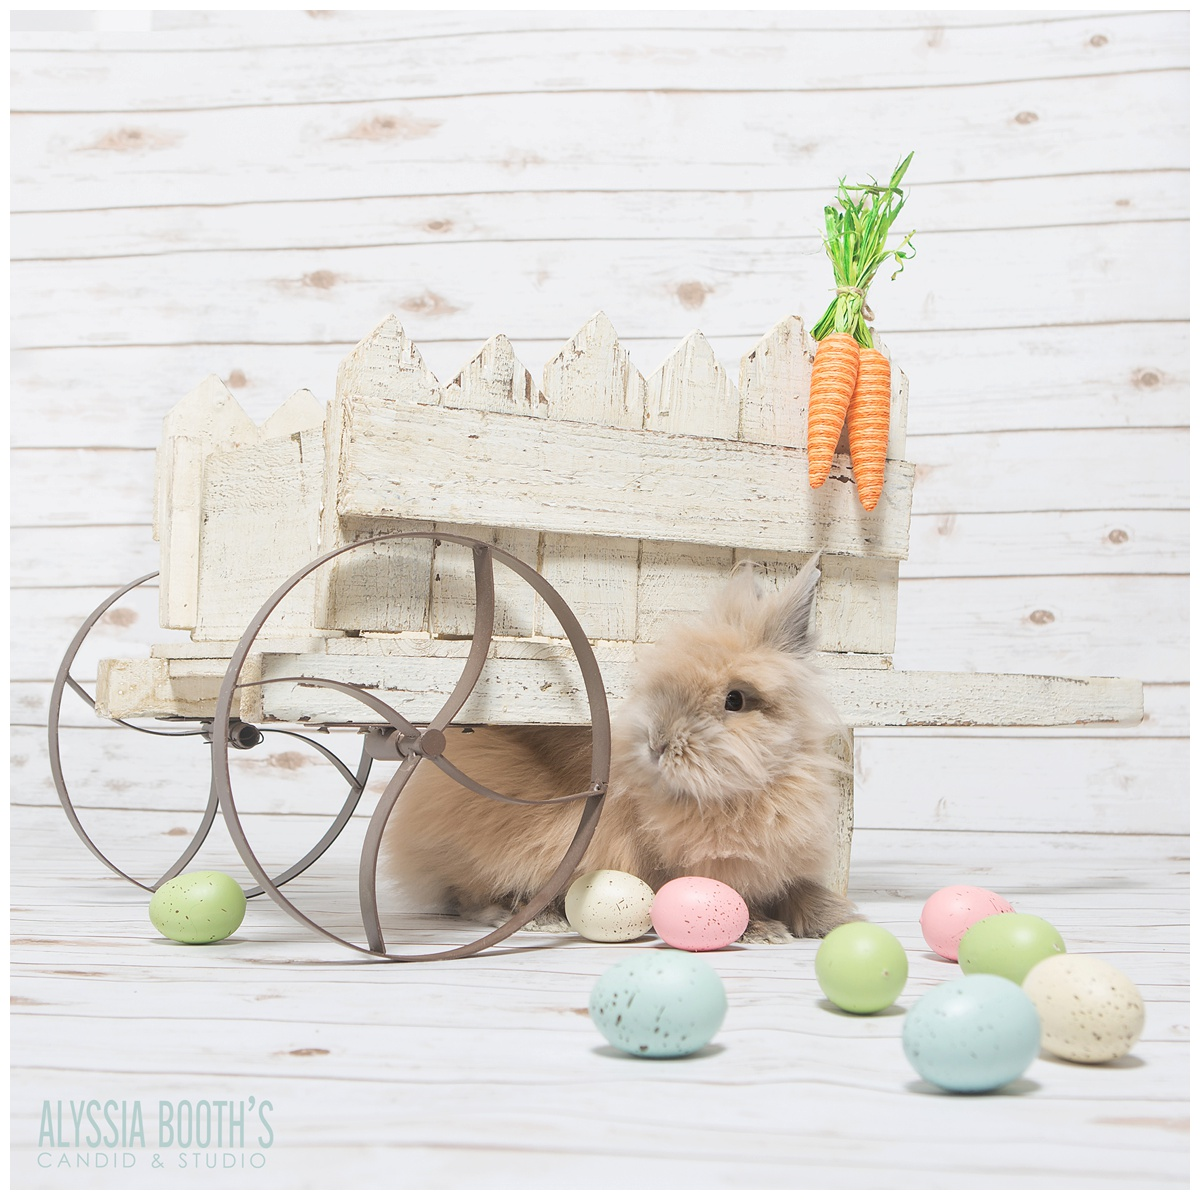 Chai Bunny | Easter Bunny | Alyssia Booth's Candid & Studio | East Lansing Photographer